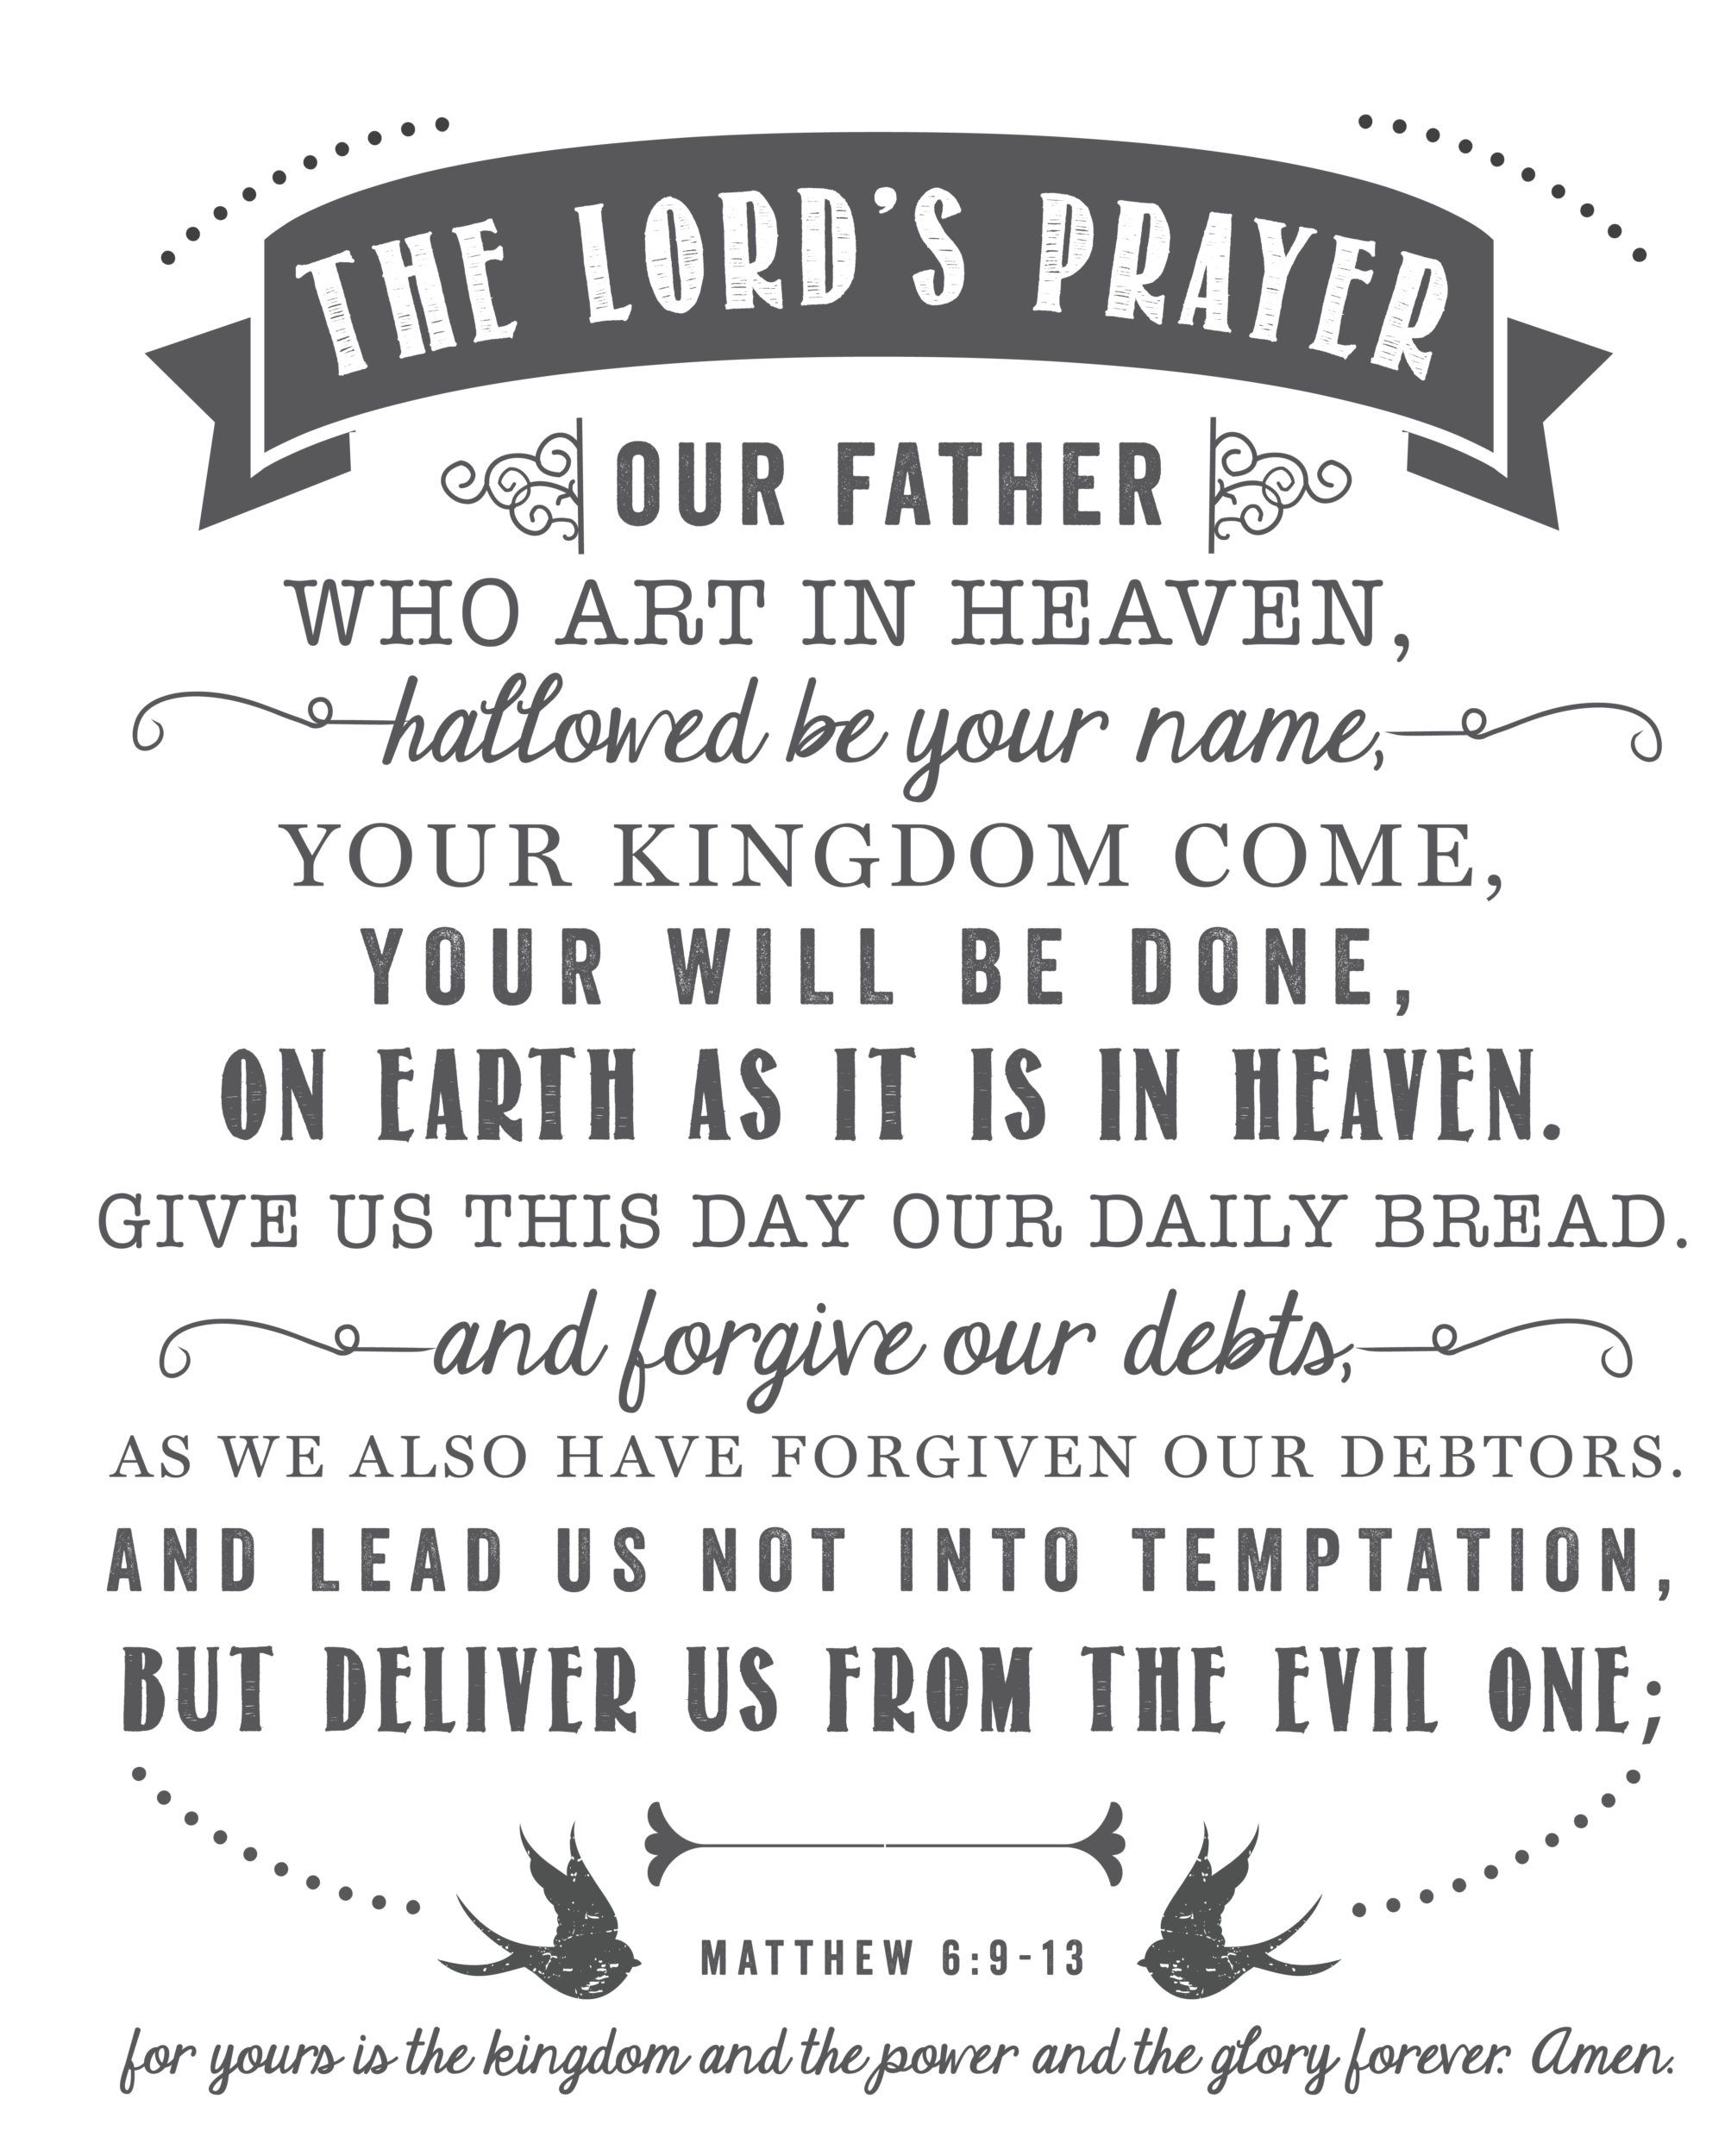 Free The Lord's Prayer printable by Sincerely, Sara D.